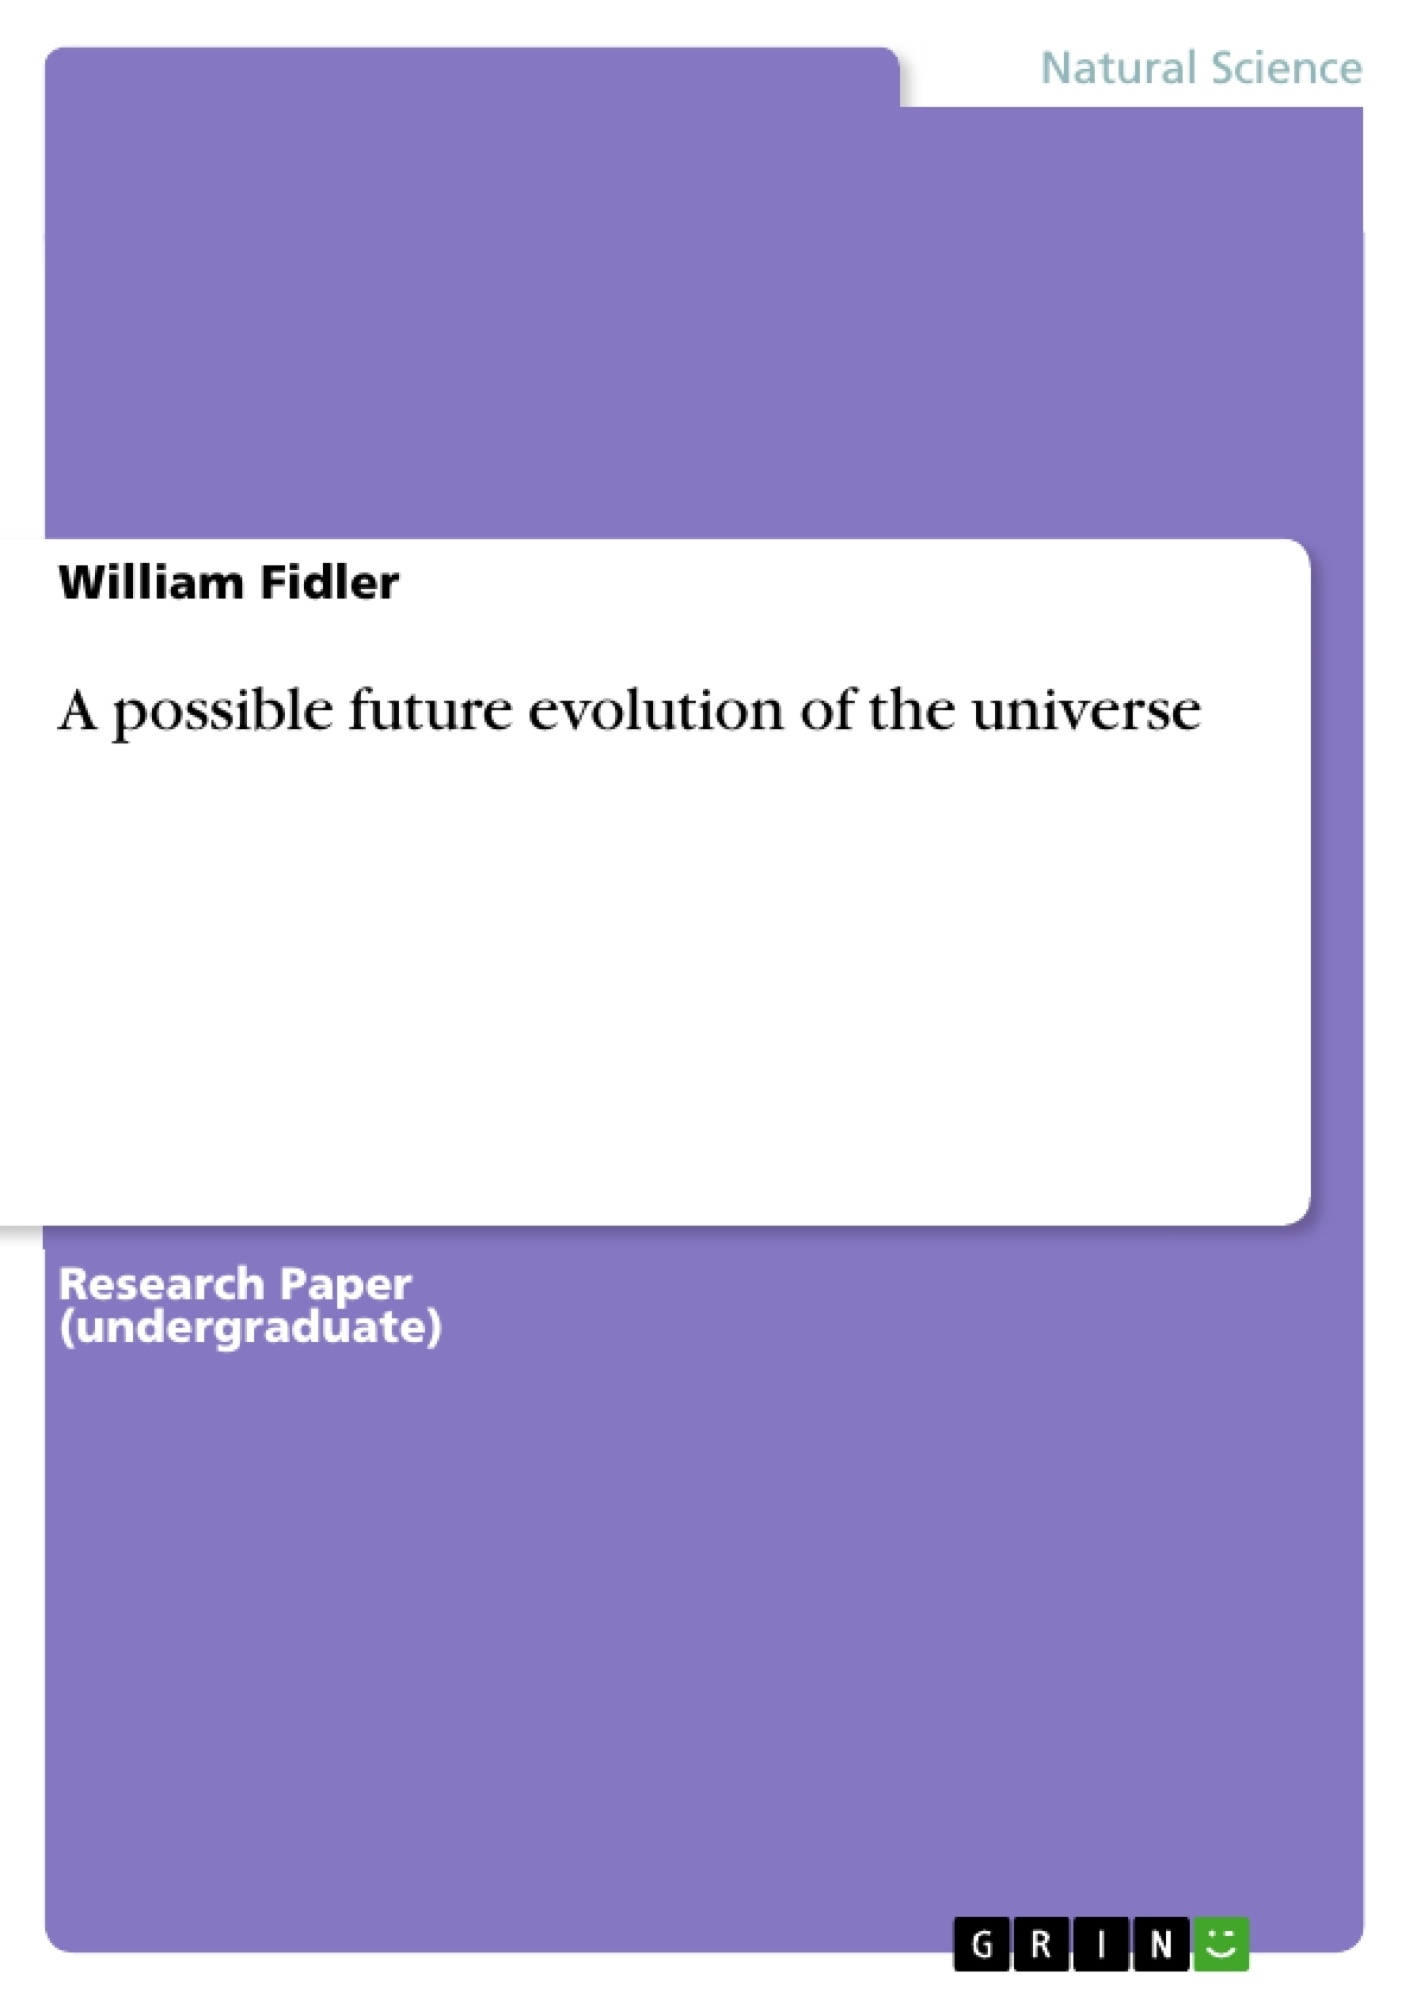 Title: A possible future evolution of the universe